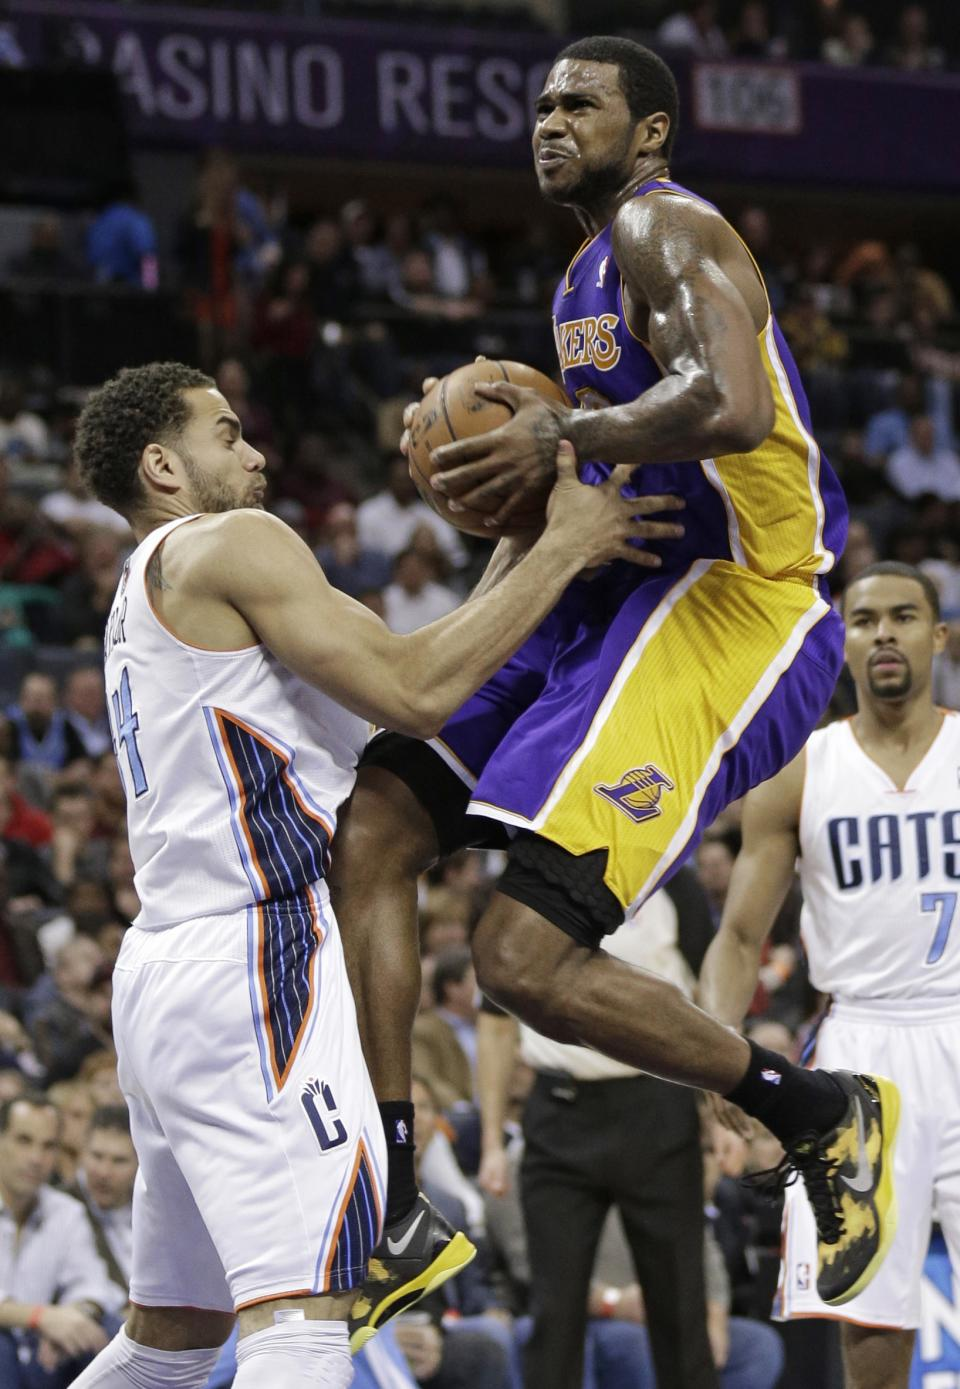 Los Angeles Lakers' Earl Clark, right, is fouled by Charlotte Bobcats' Jeffery Taylor, left, during the second half of an NBA basketball game in Charlotte, N.C., Friday, Feb. 8, 2013. The Lakers won 100-93. (AP Photo/Chuck Burton)